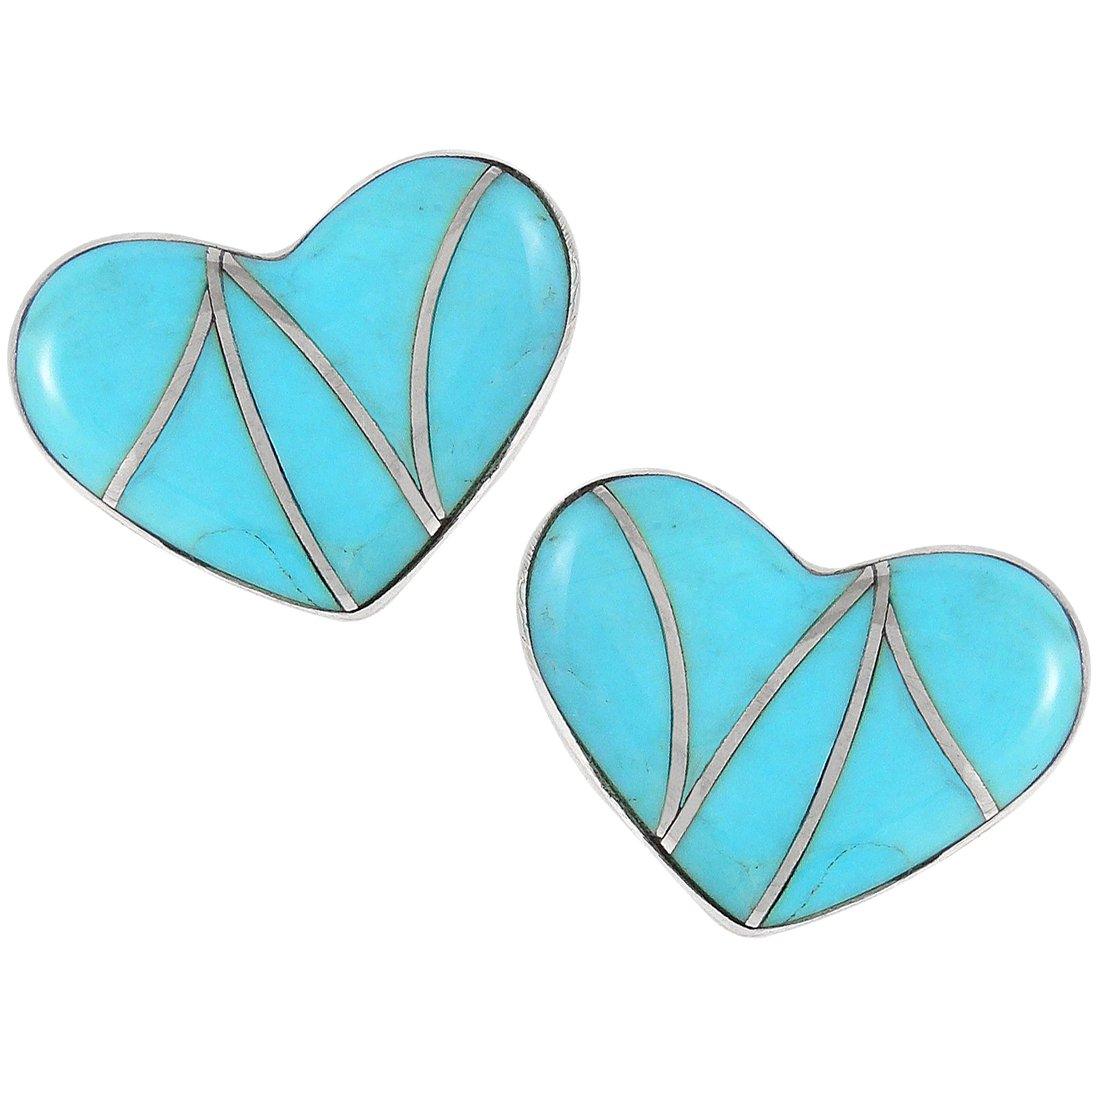 Turquoise Earrings 925 Sterling Silver & Genuine Turquoise (Hearts)